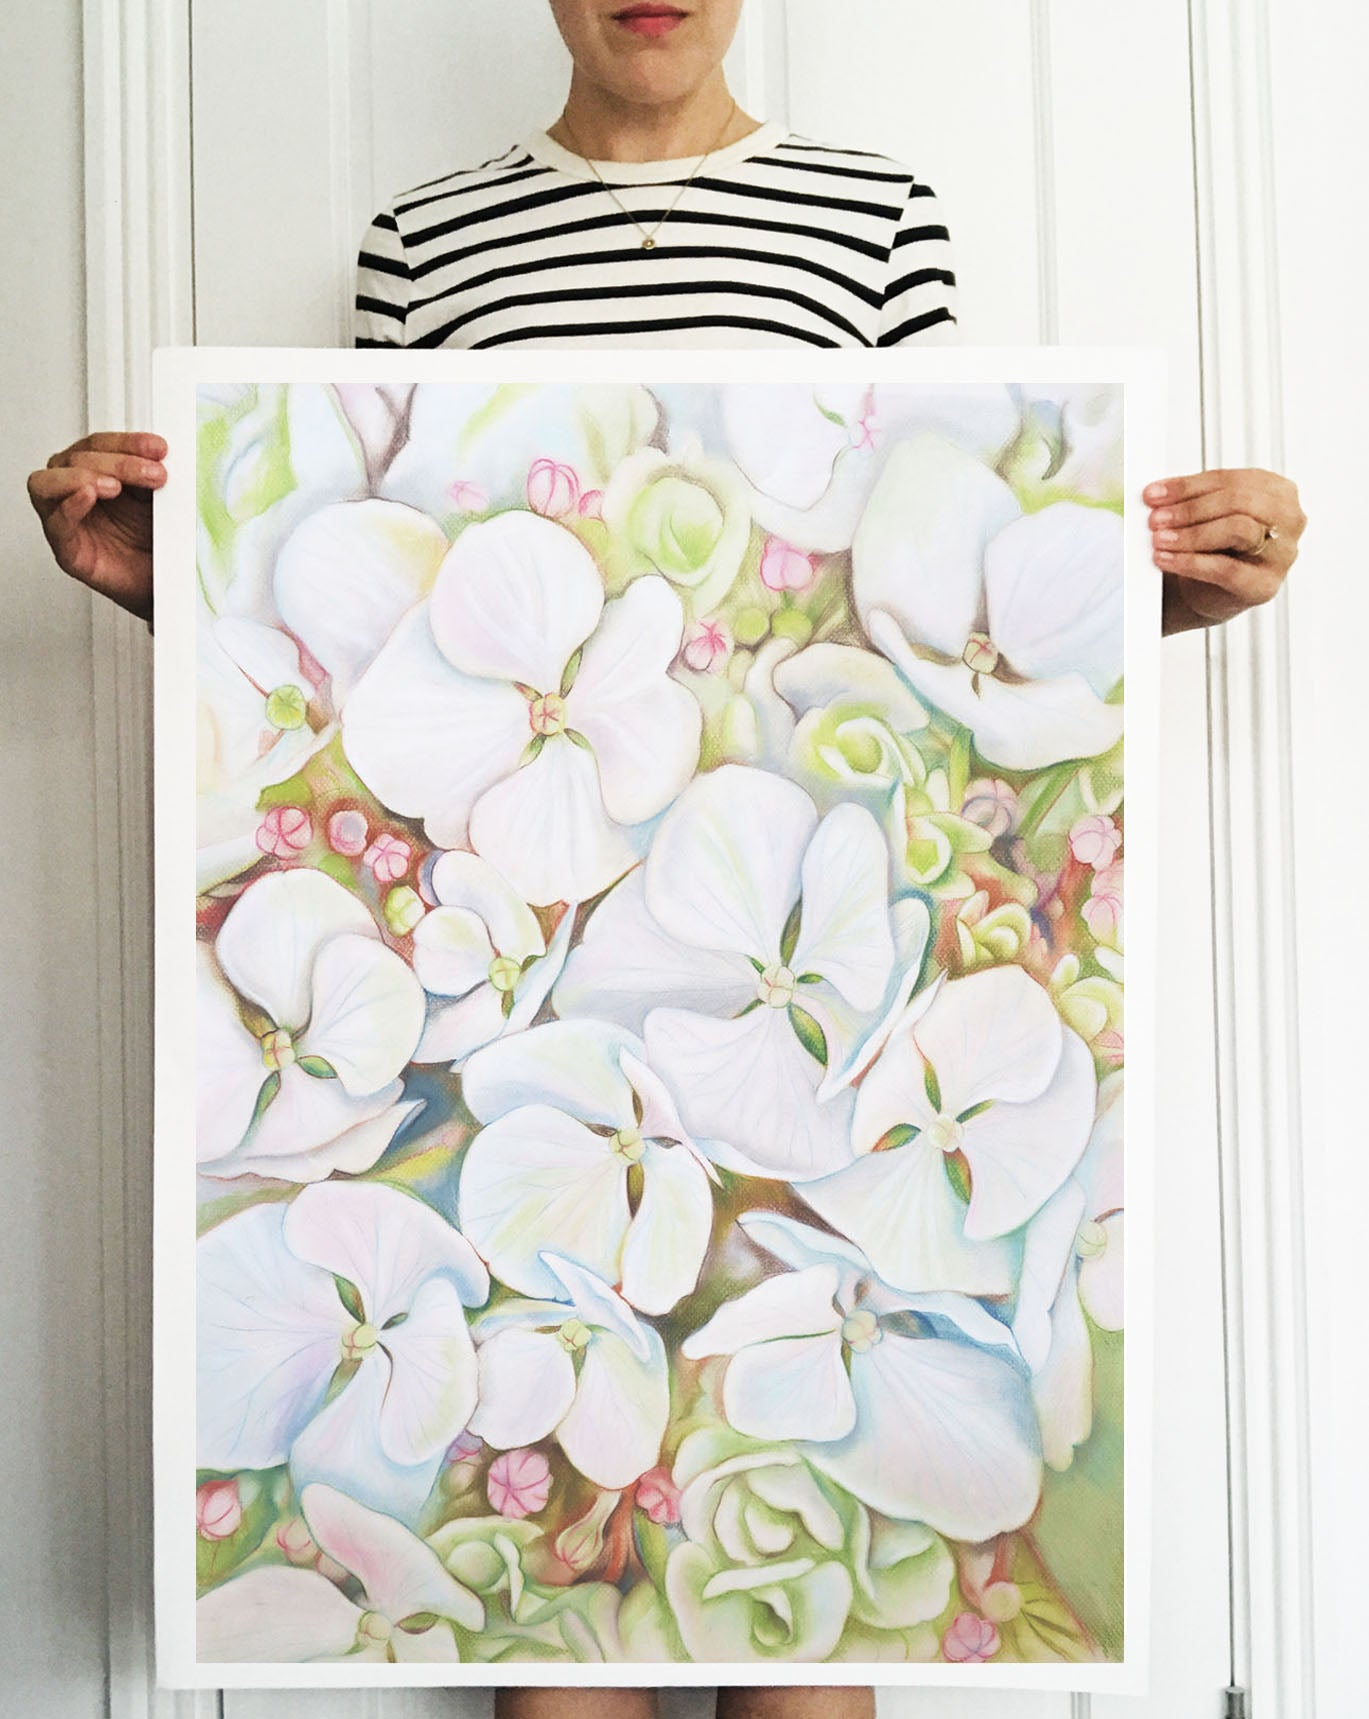 'Hydrangea Blooms in White' Signed Giclee Fine Art Print